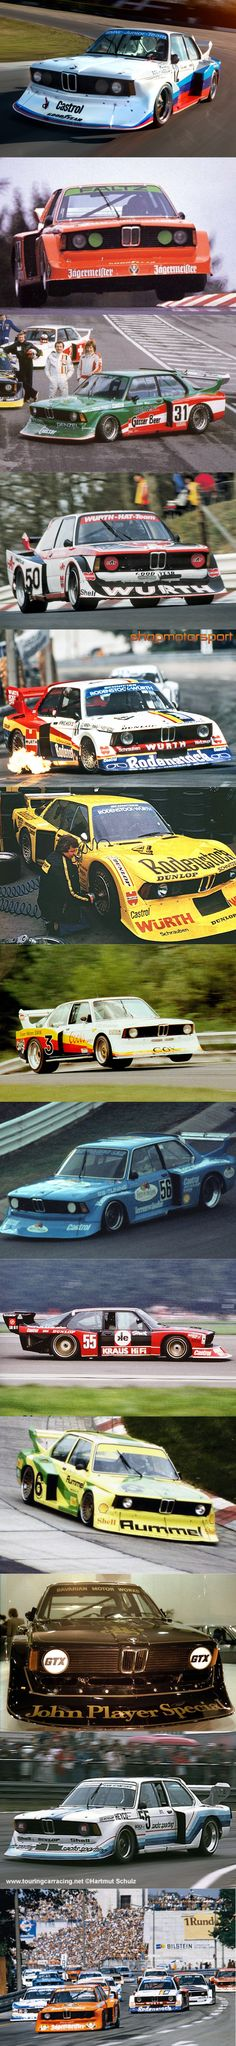 1977 BMW 320i Turbo Group 5 liveries / Motorsport / Jägermeister / Gösser Beer / Würth / Rodenstock (2x) / Coors / Fruit of the Loom / Kraus Hifi / Rummel / JPS / Sachs